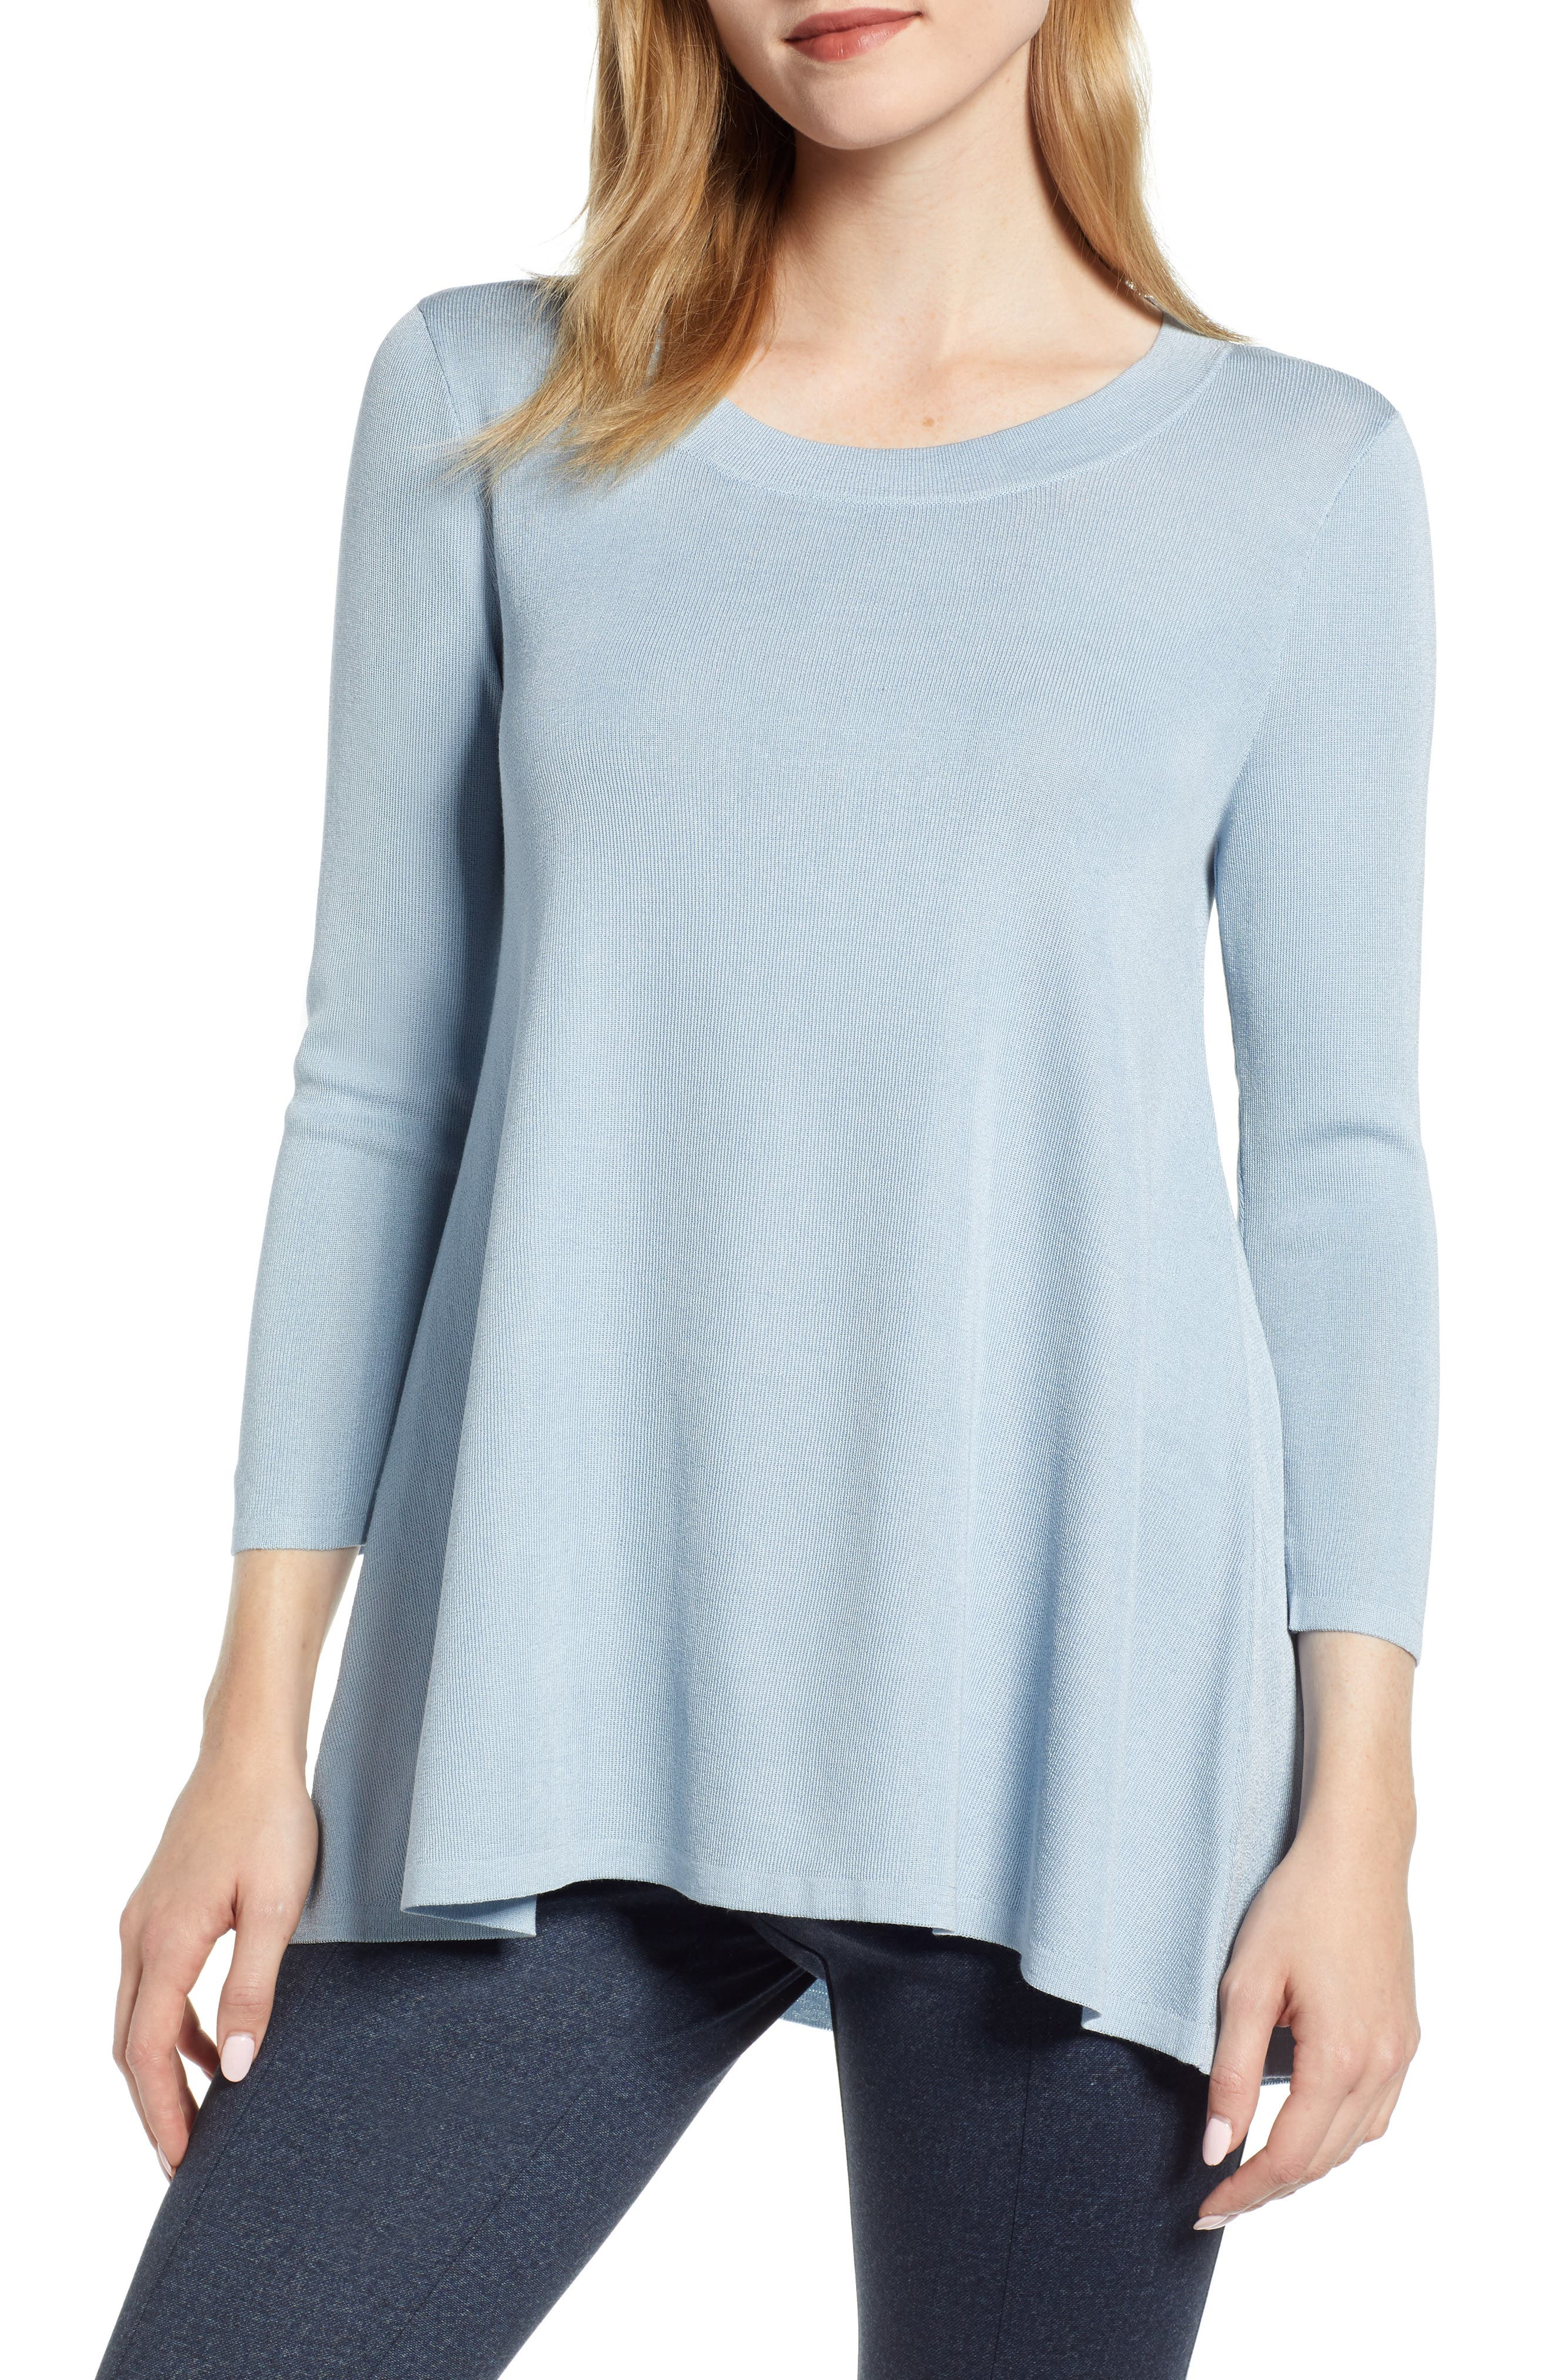 ANNE KLEIN Scoop Neck Knit Top in Rameau